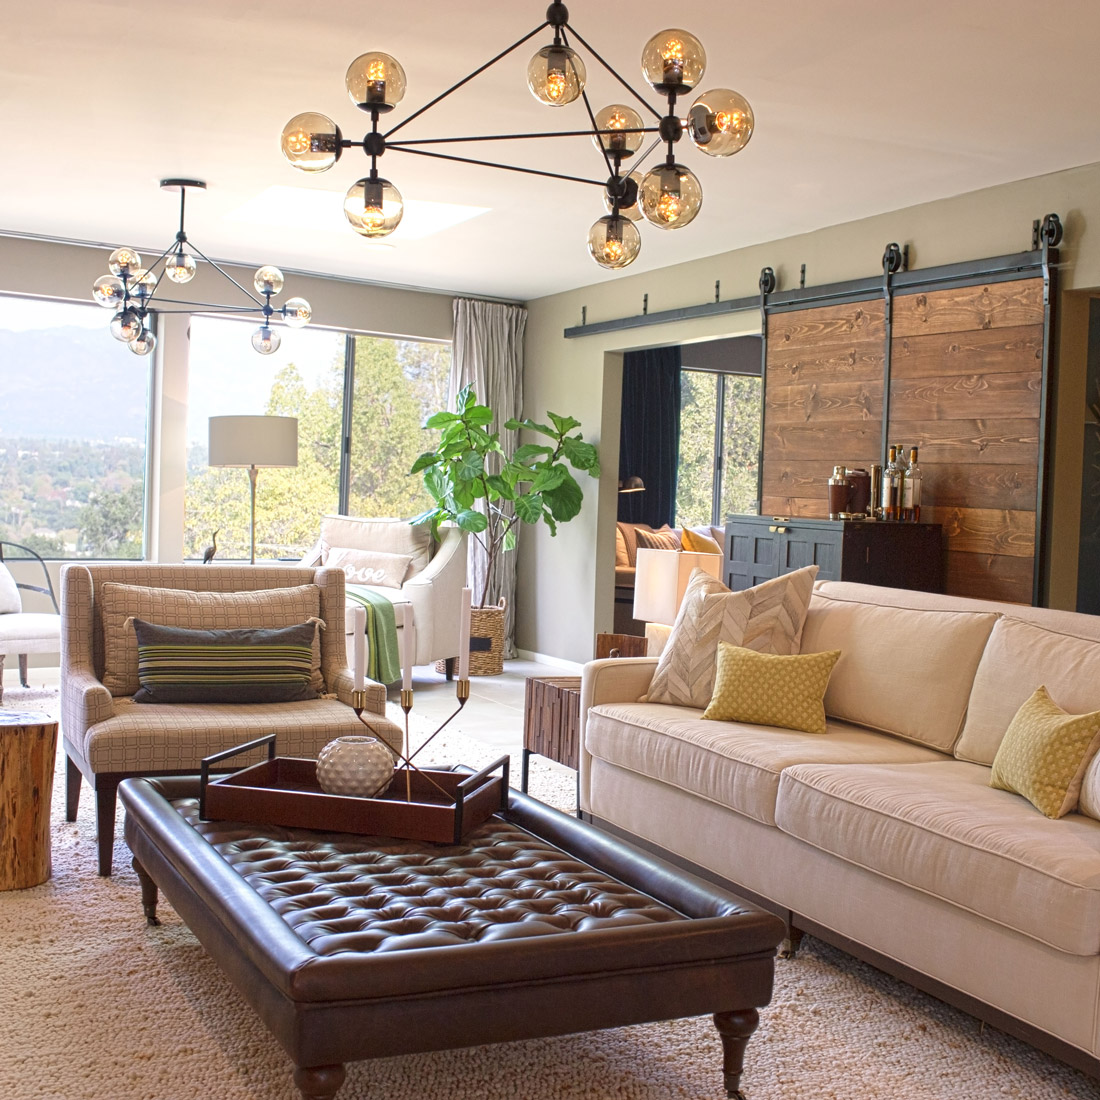 Living room with linen sofa and geometric upholstered chair and tufted leather ottoman with modern globe pendant light a large barn door divides the living room from the family room design by sara bates interior design